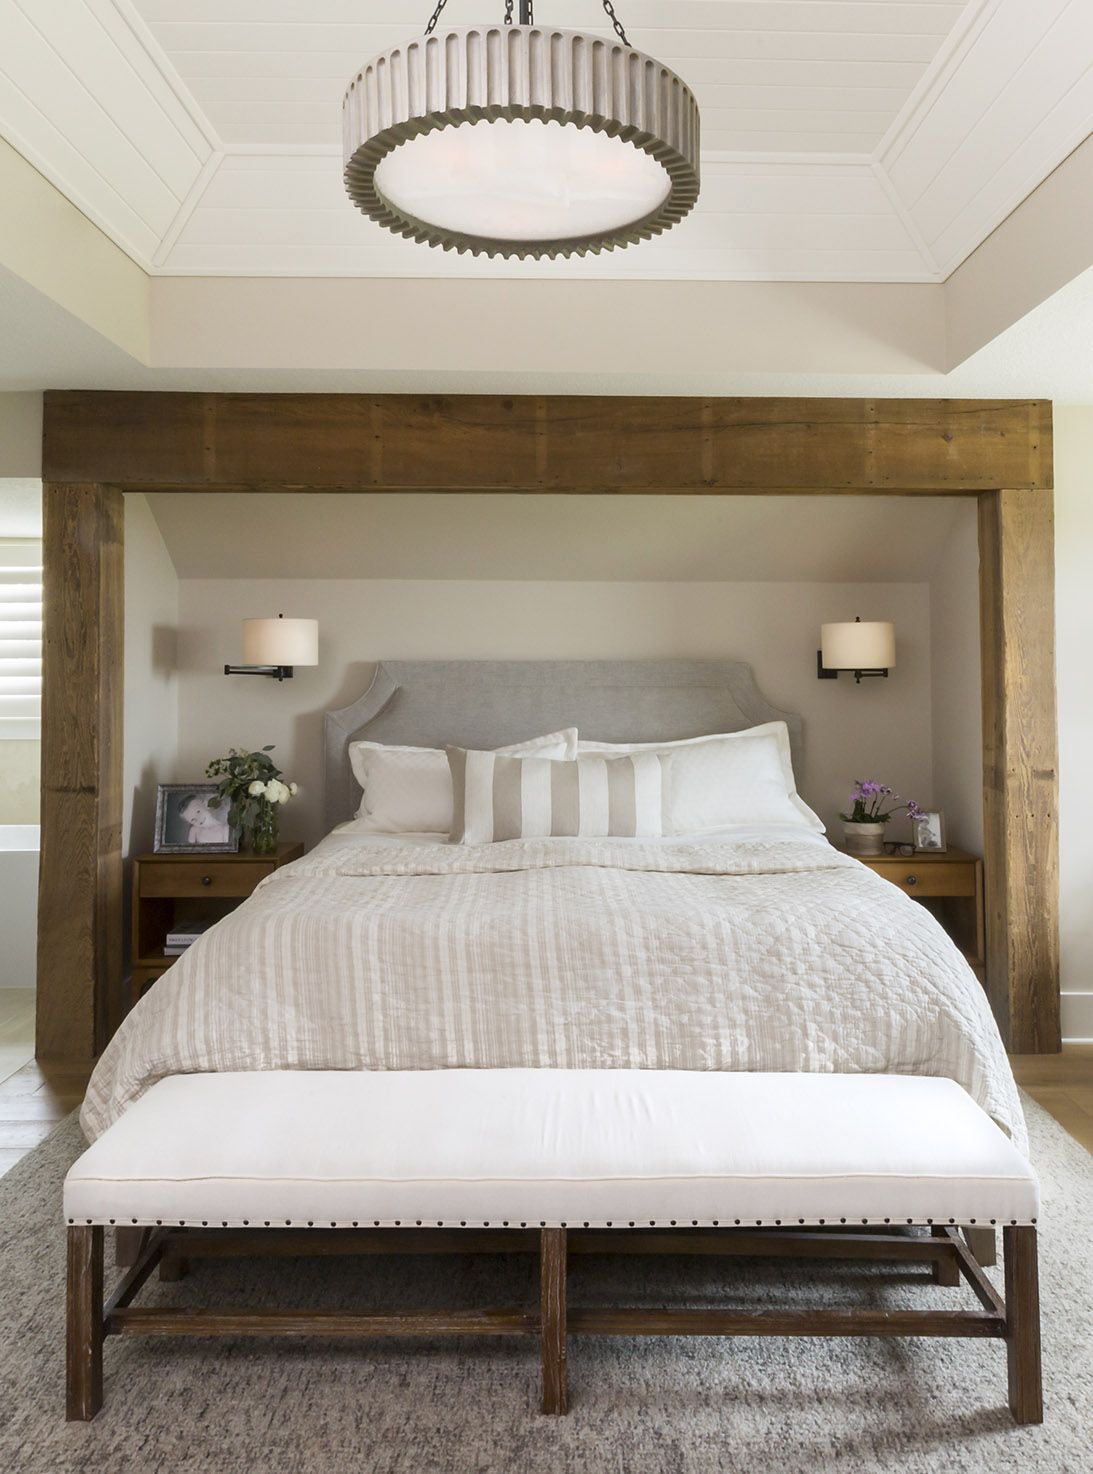 reclaimed wood beams define the recessed bed nook in this rh pinterest com